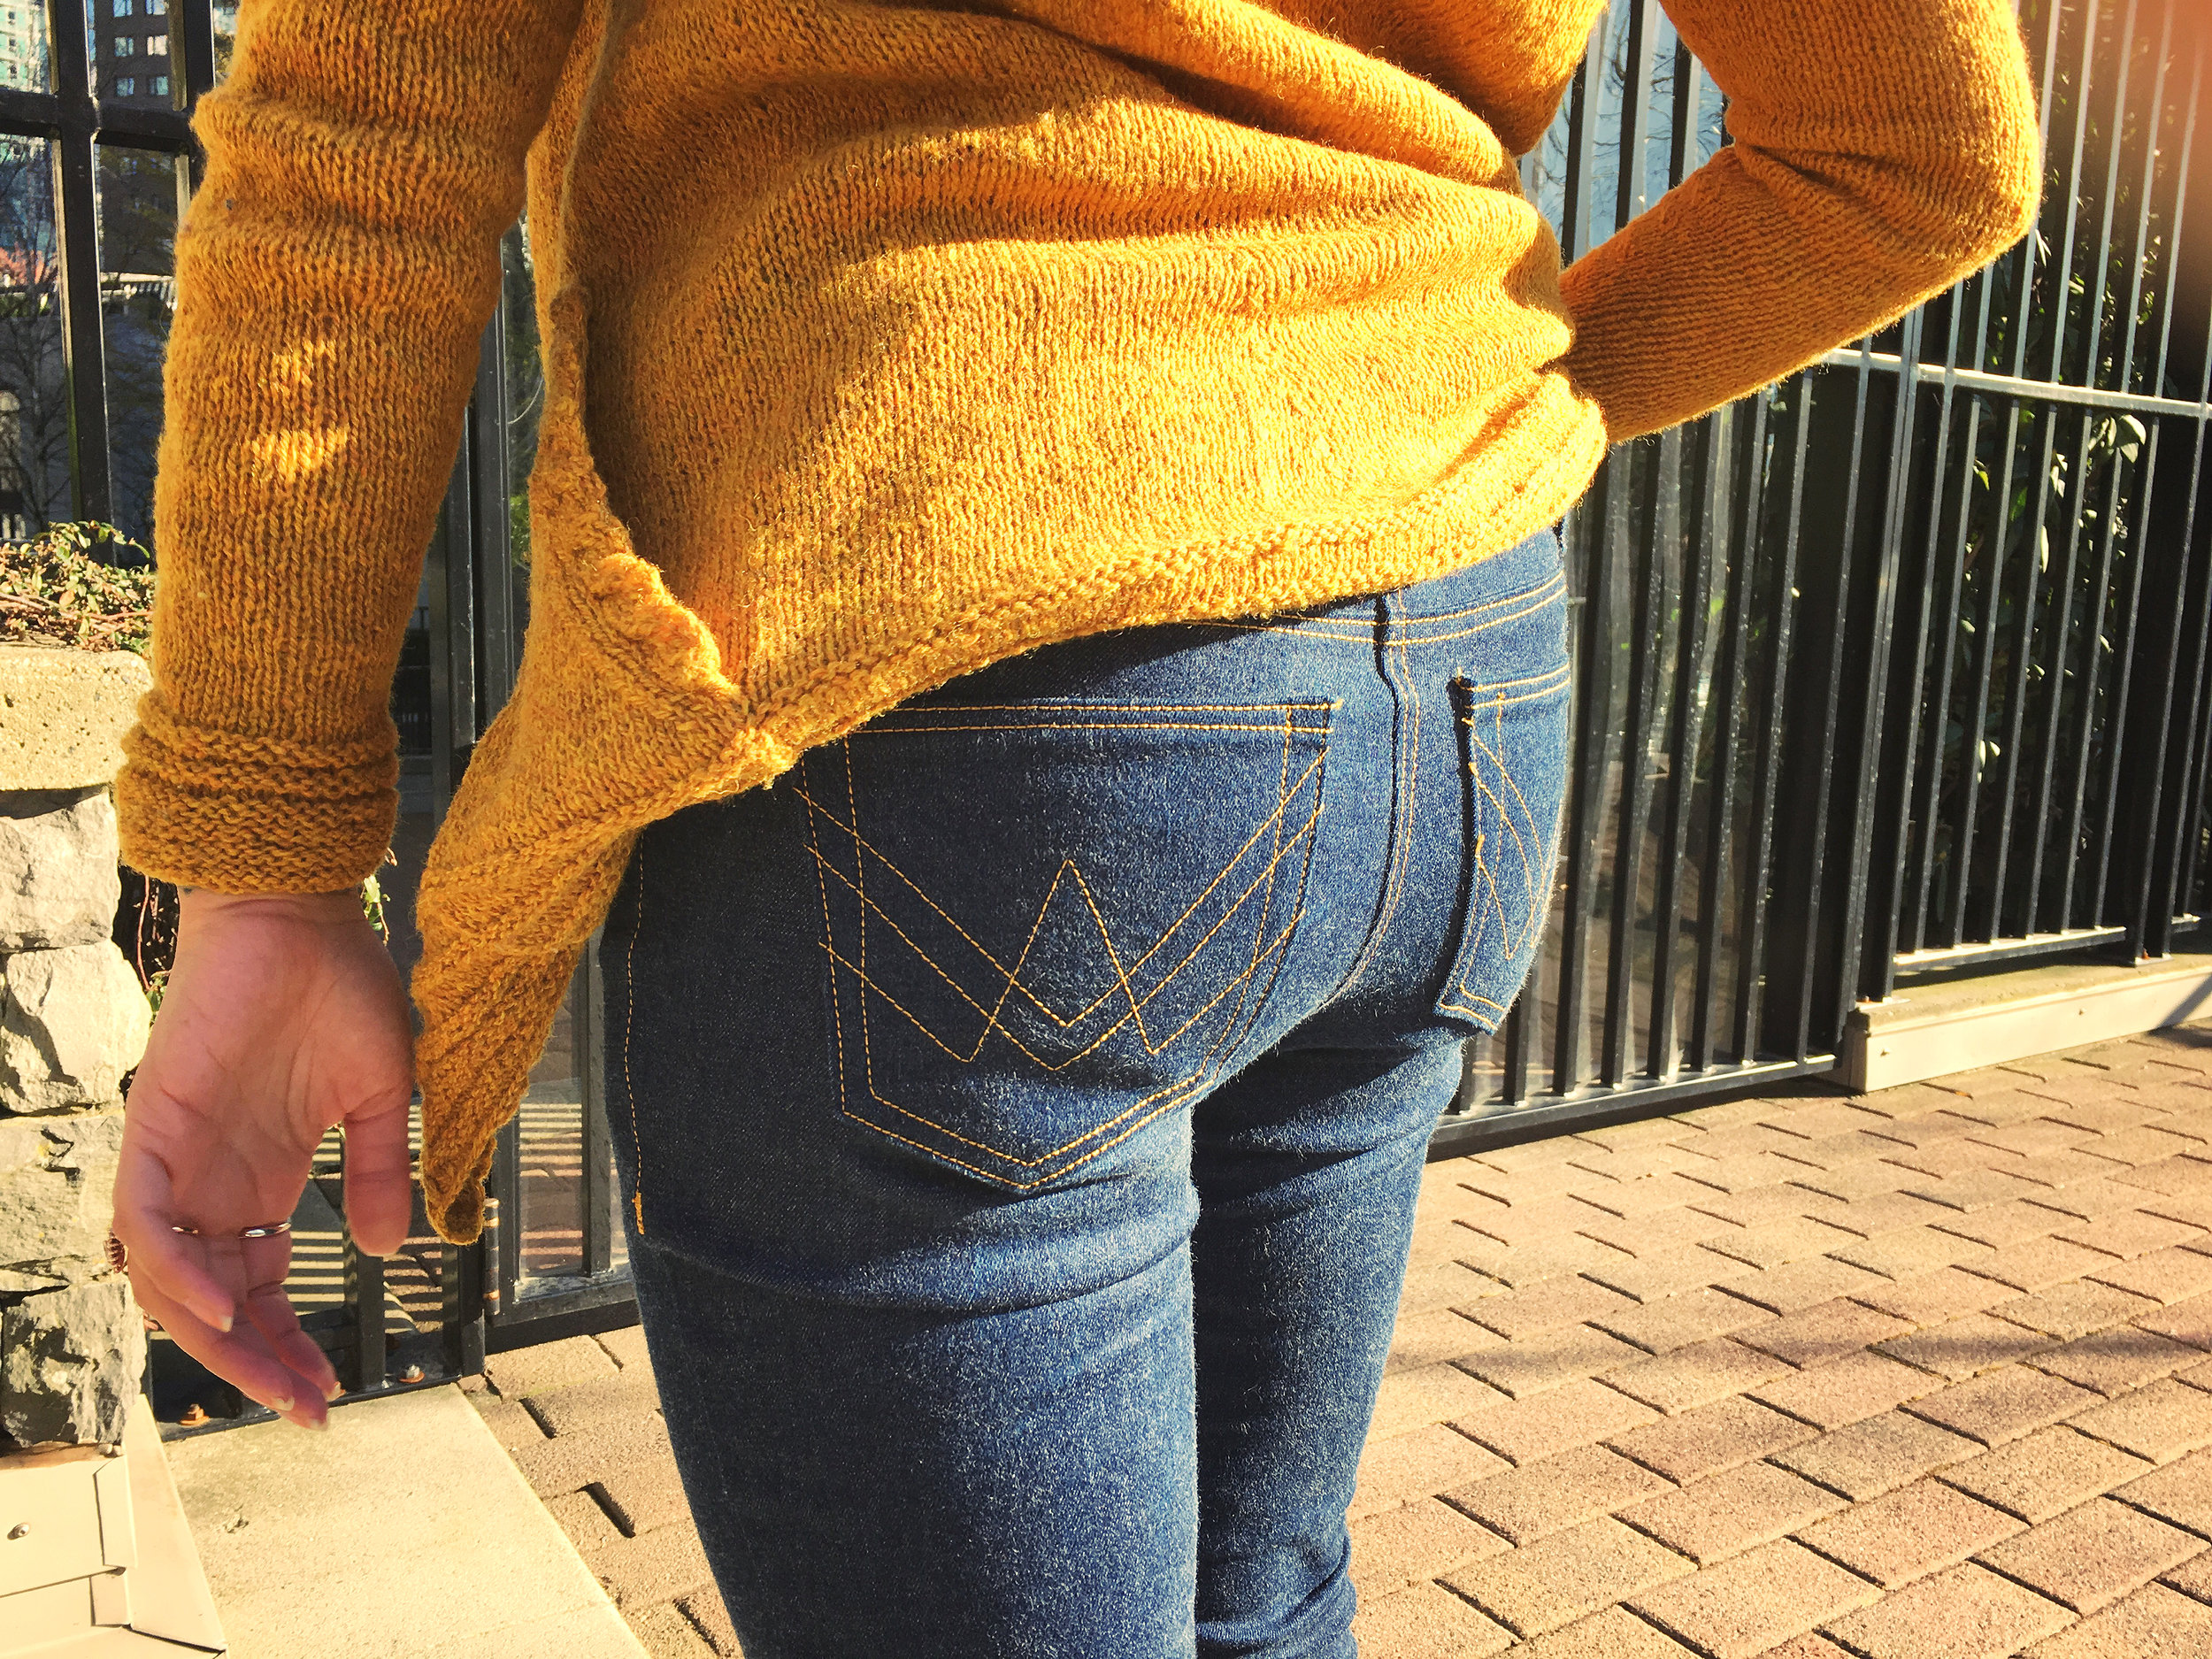 Cheeky butt photo! What self respecting jeans blog post wouldn't have one?